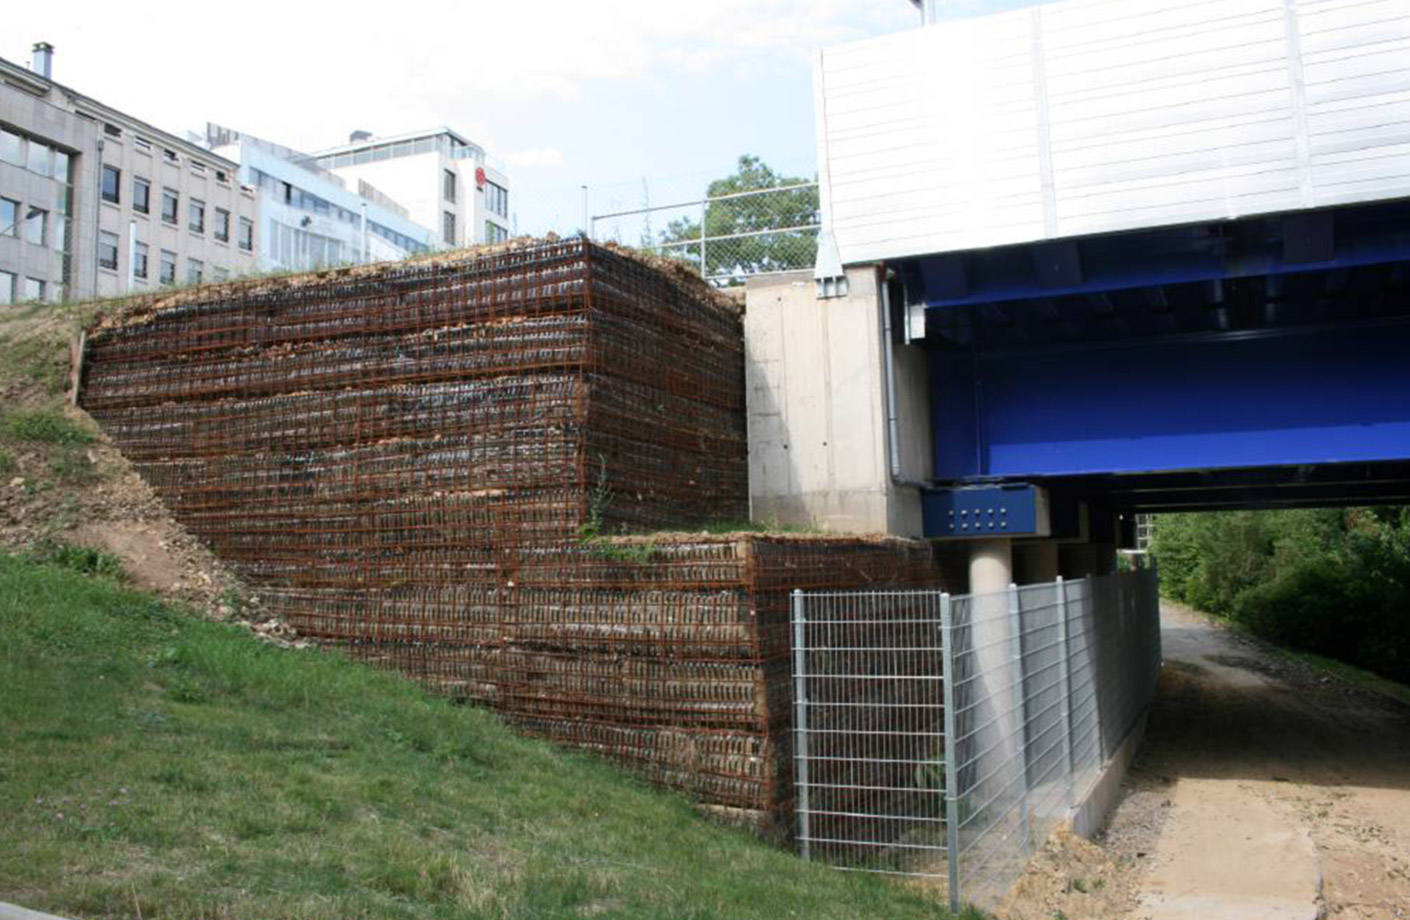 Cost-effective re-use of materials from site